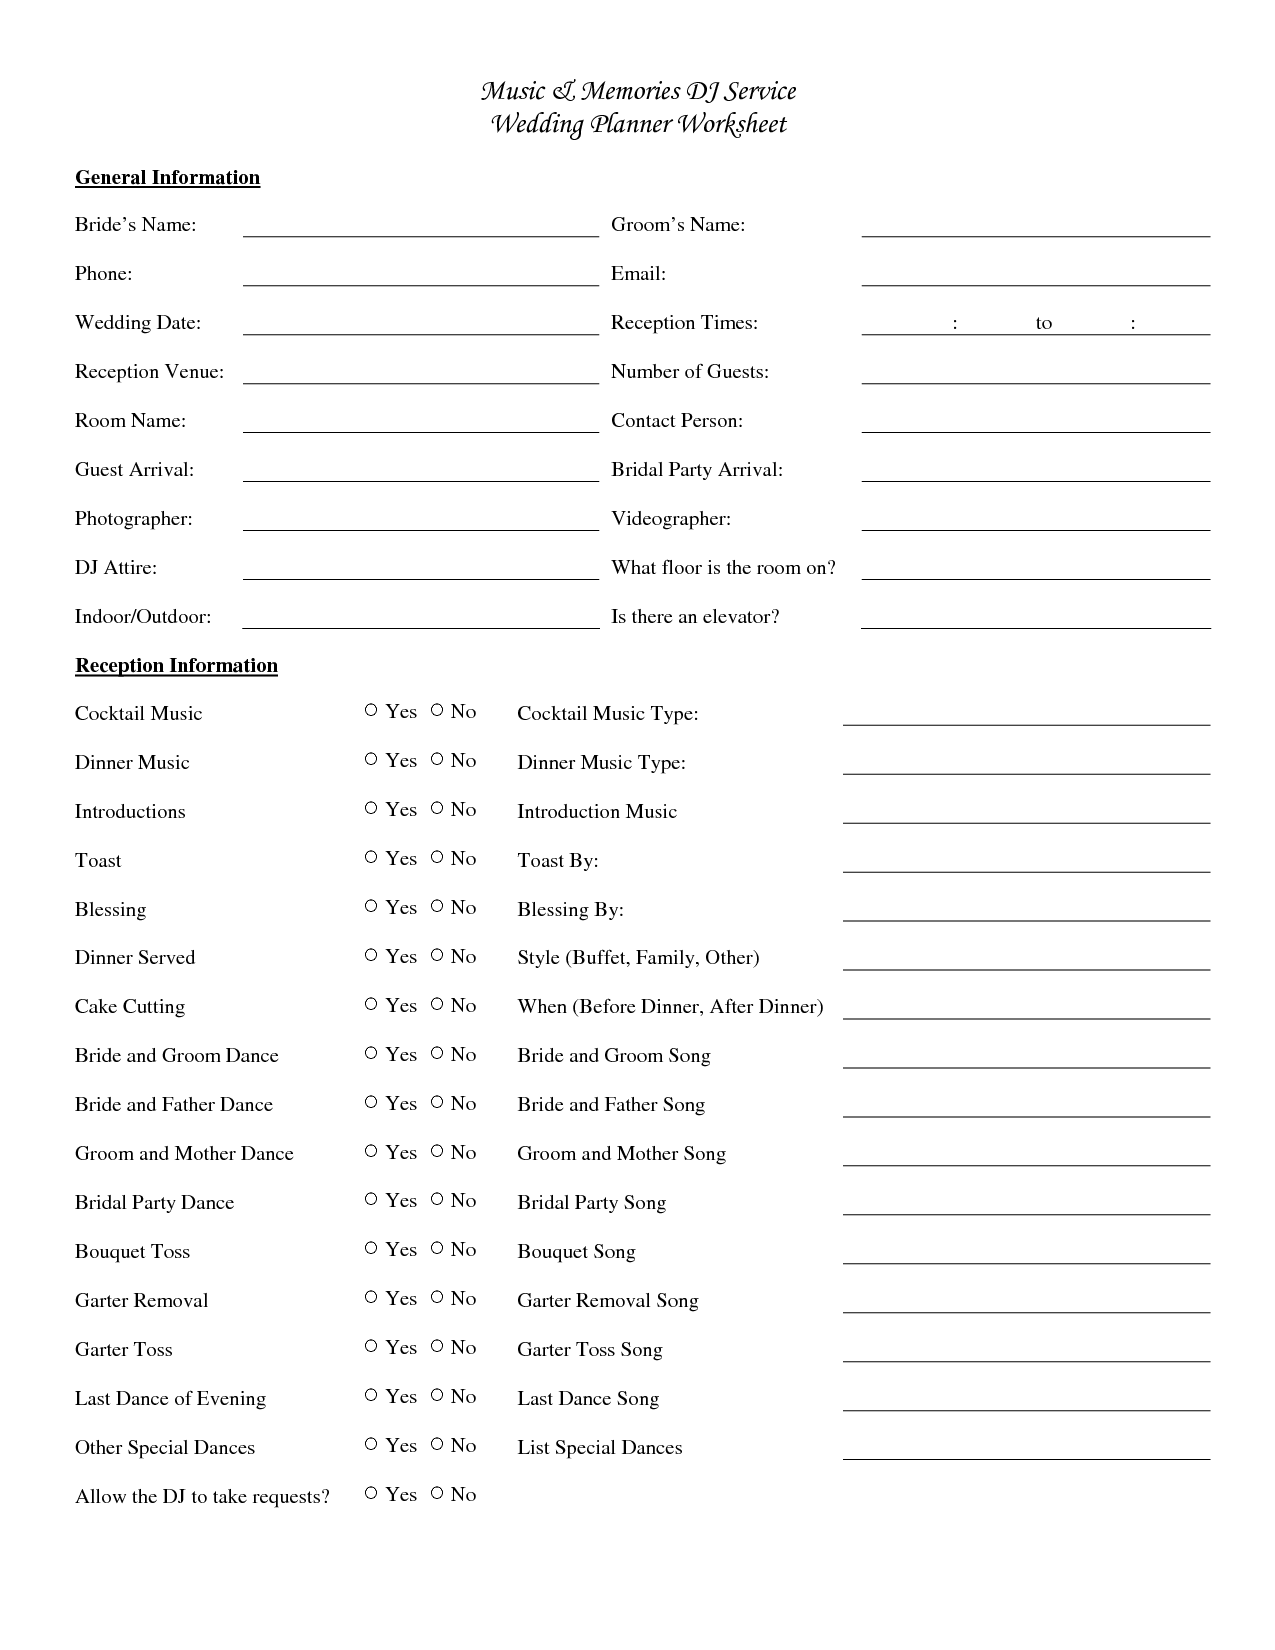 Worksheets Wedding Day Timeline Worksheet wedding dj checklist music memories service planner worksheet yes no yes